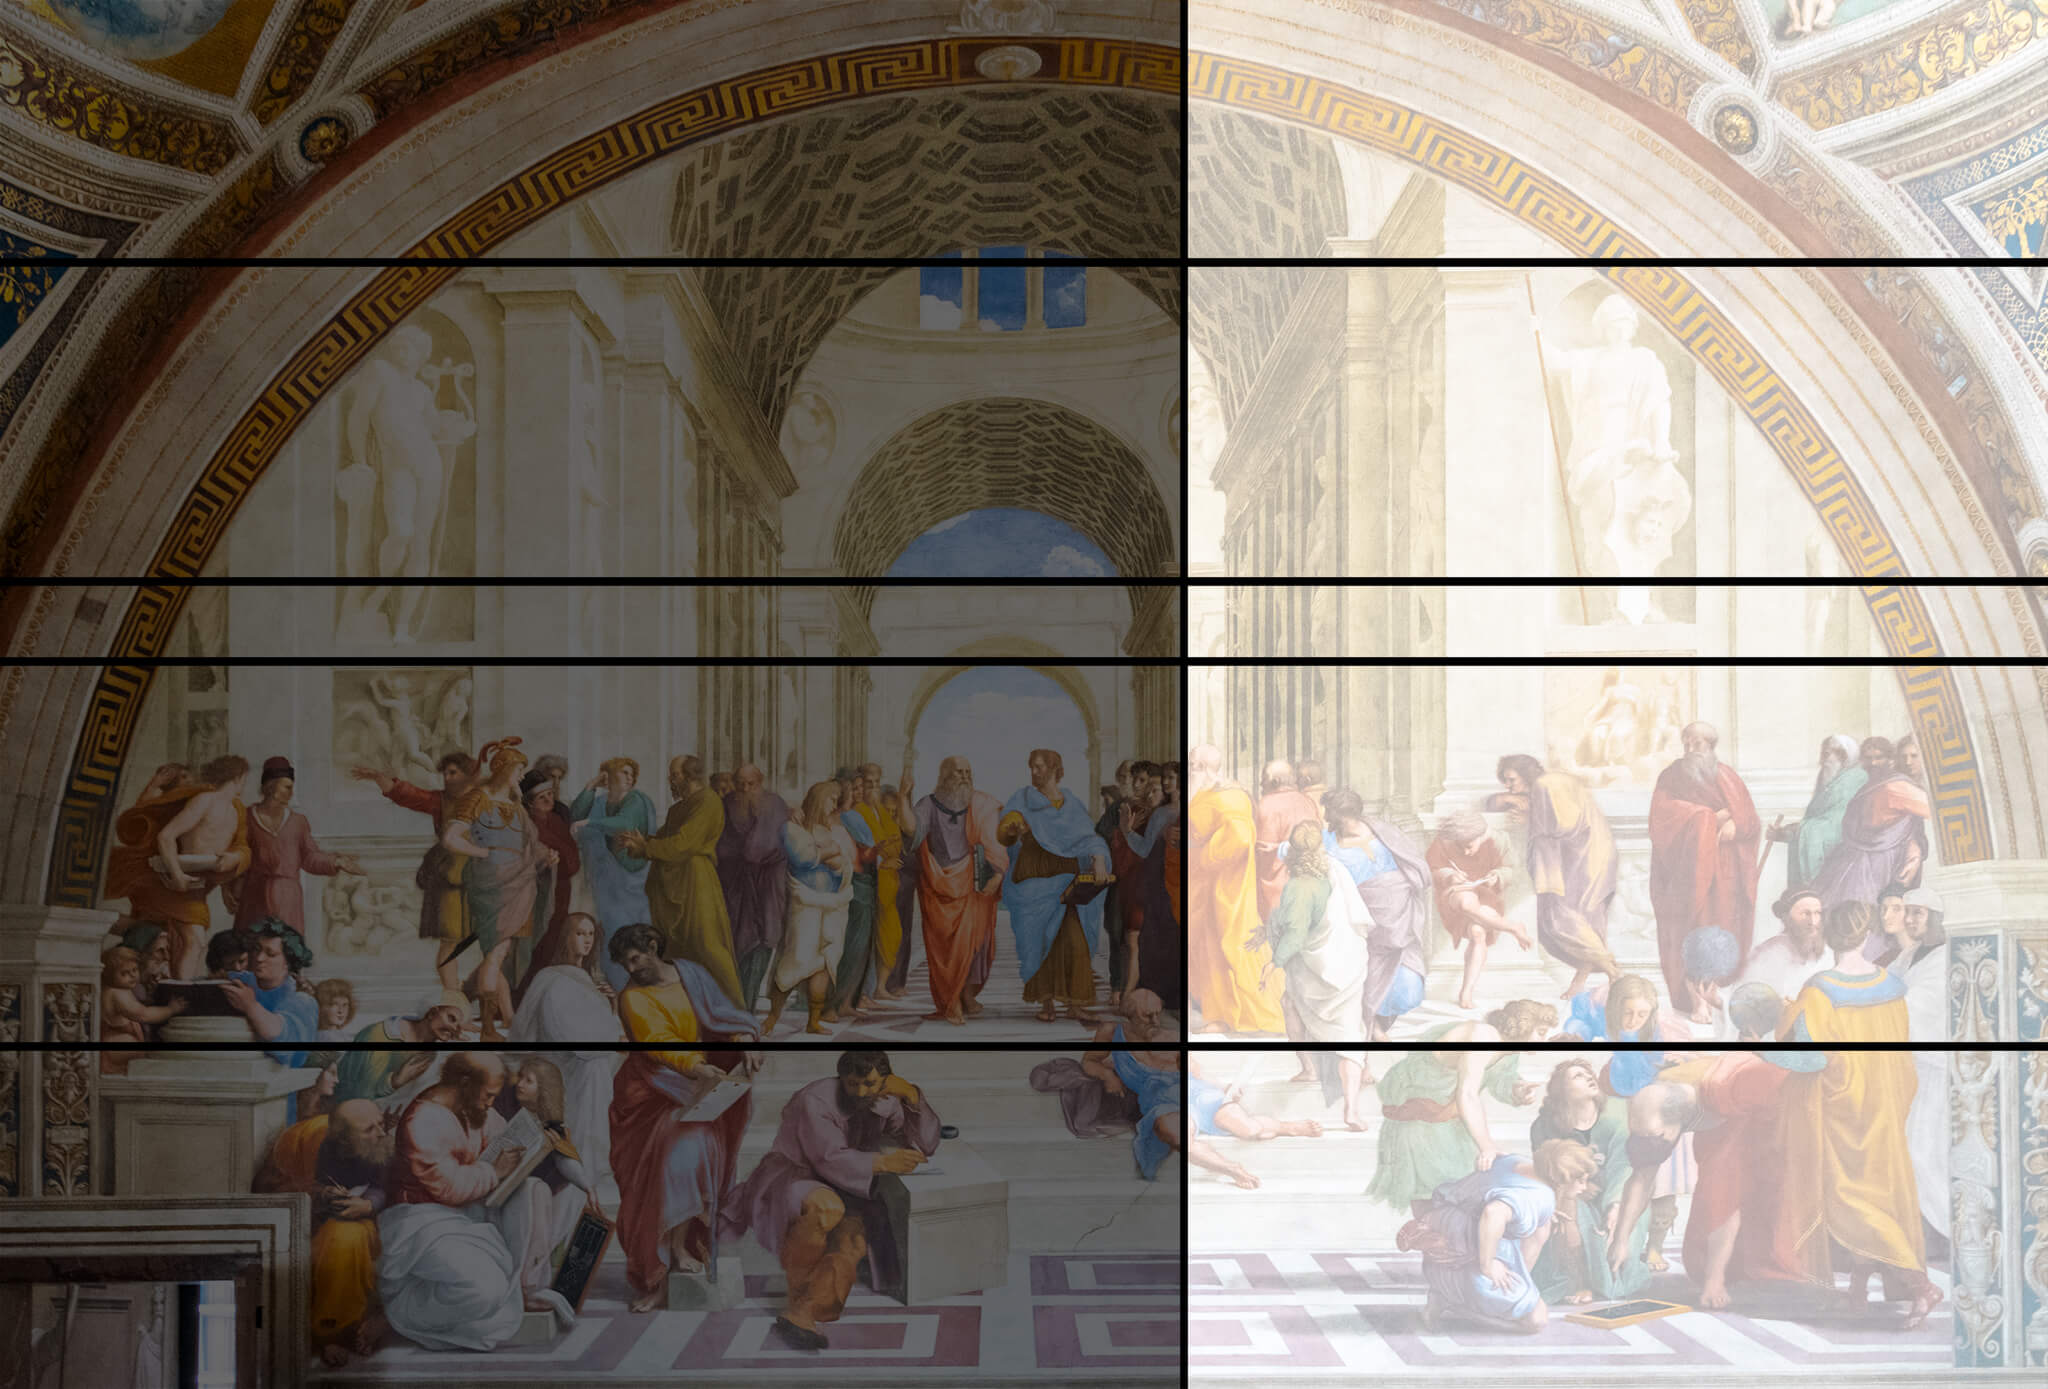 Golden Ratio Painting School of Athens